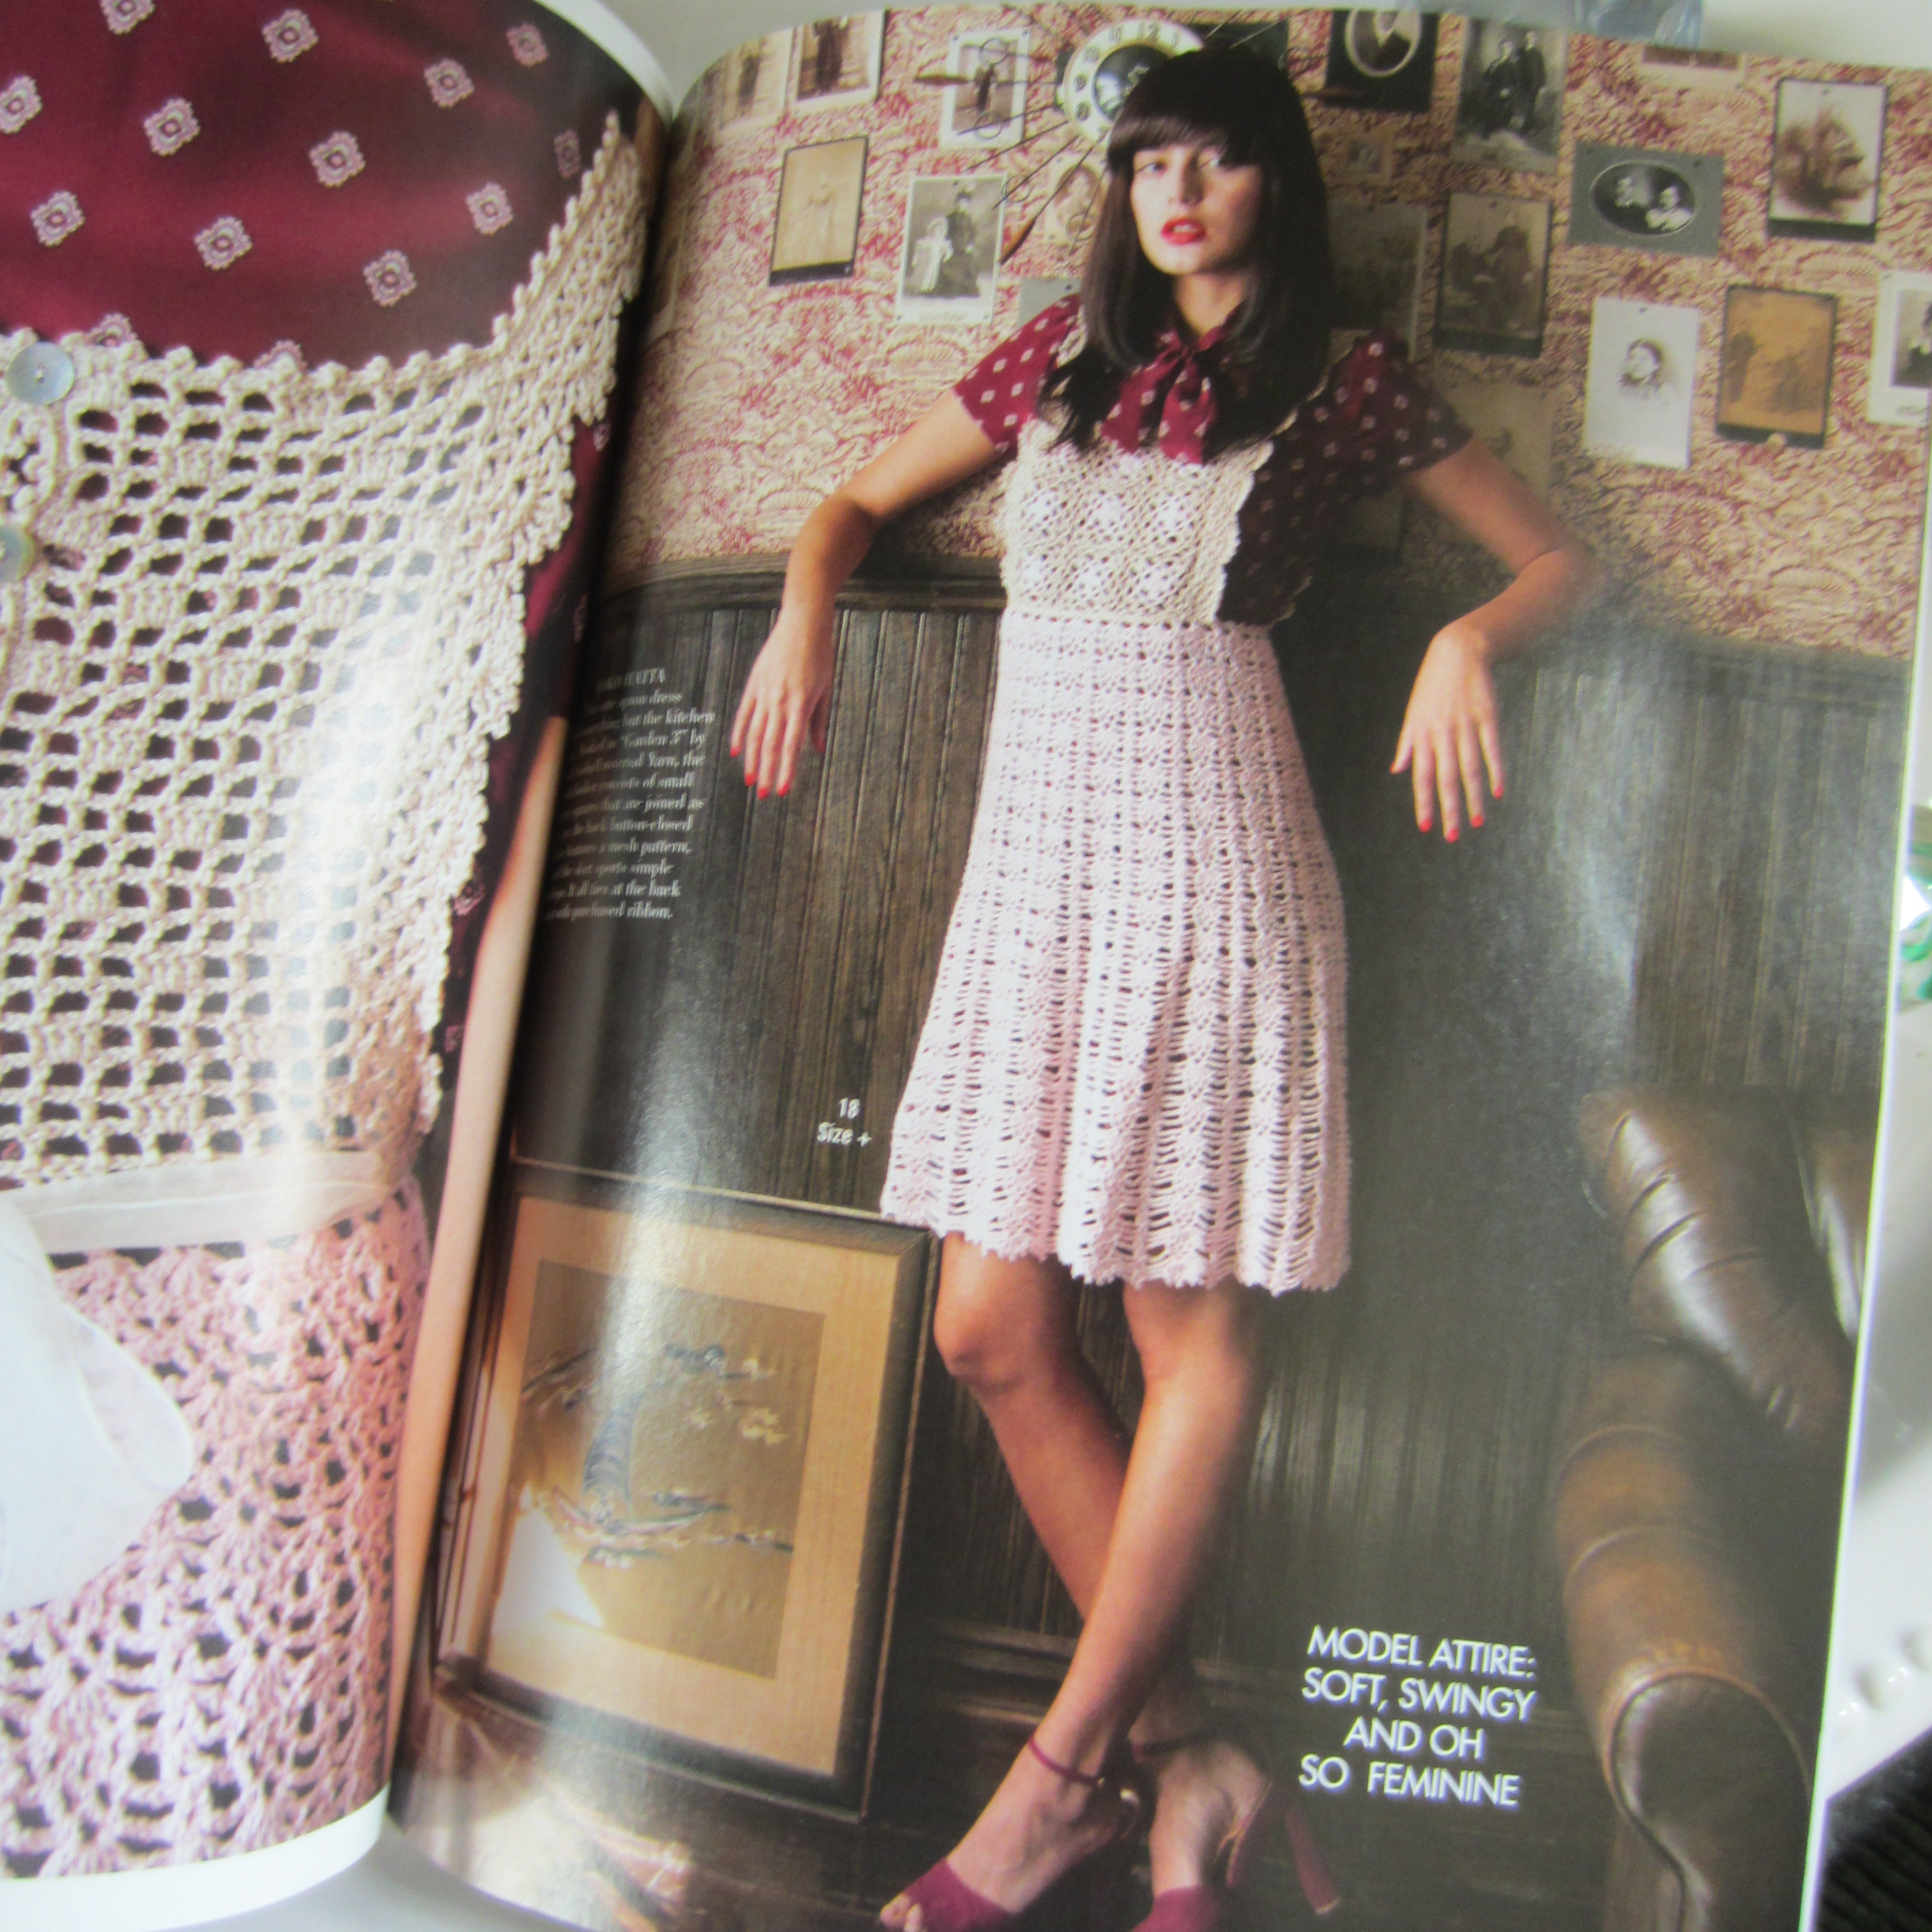 Vogue Knitting Crochet : Vogueknitting crochet special collector s issue g